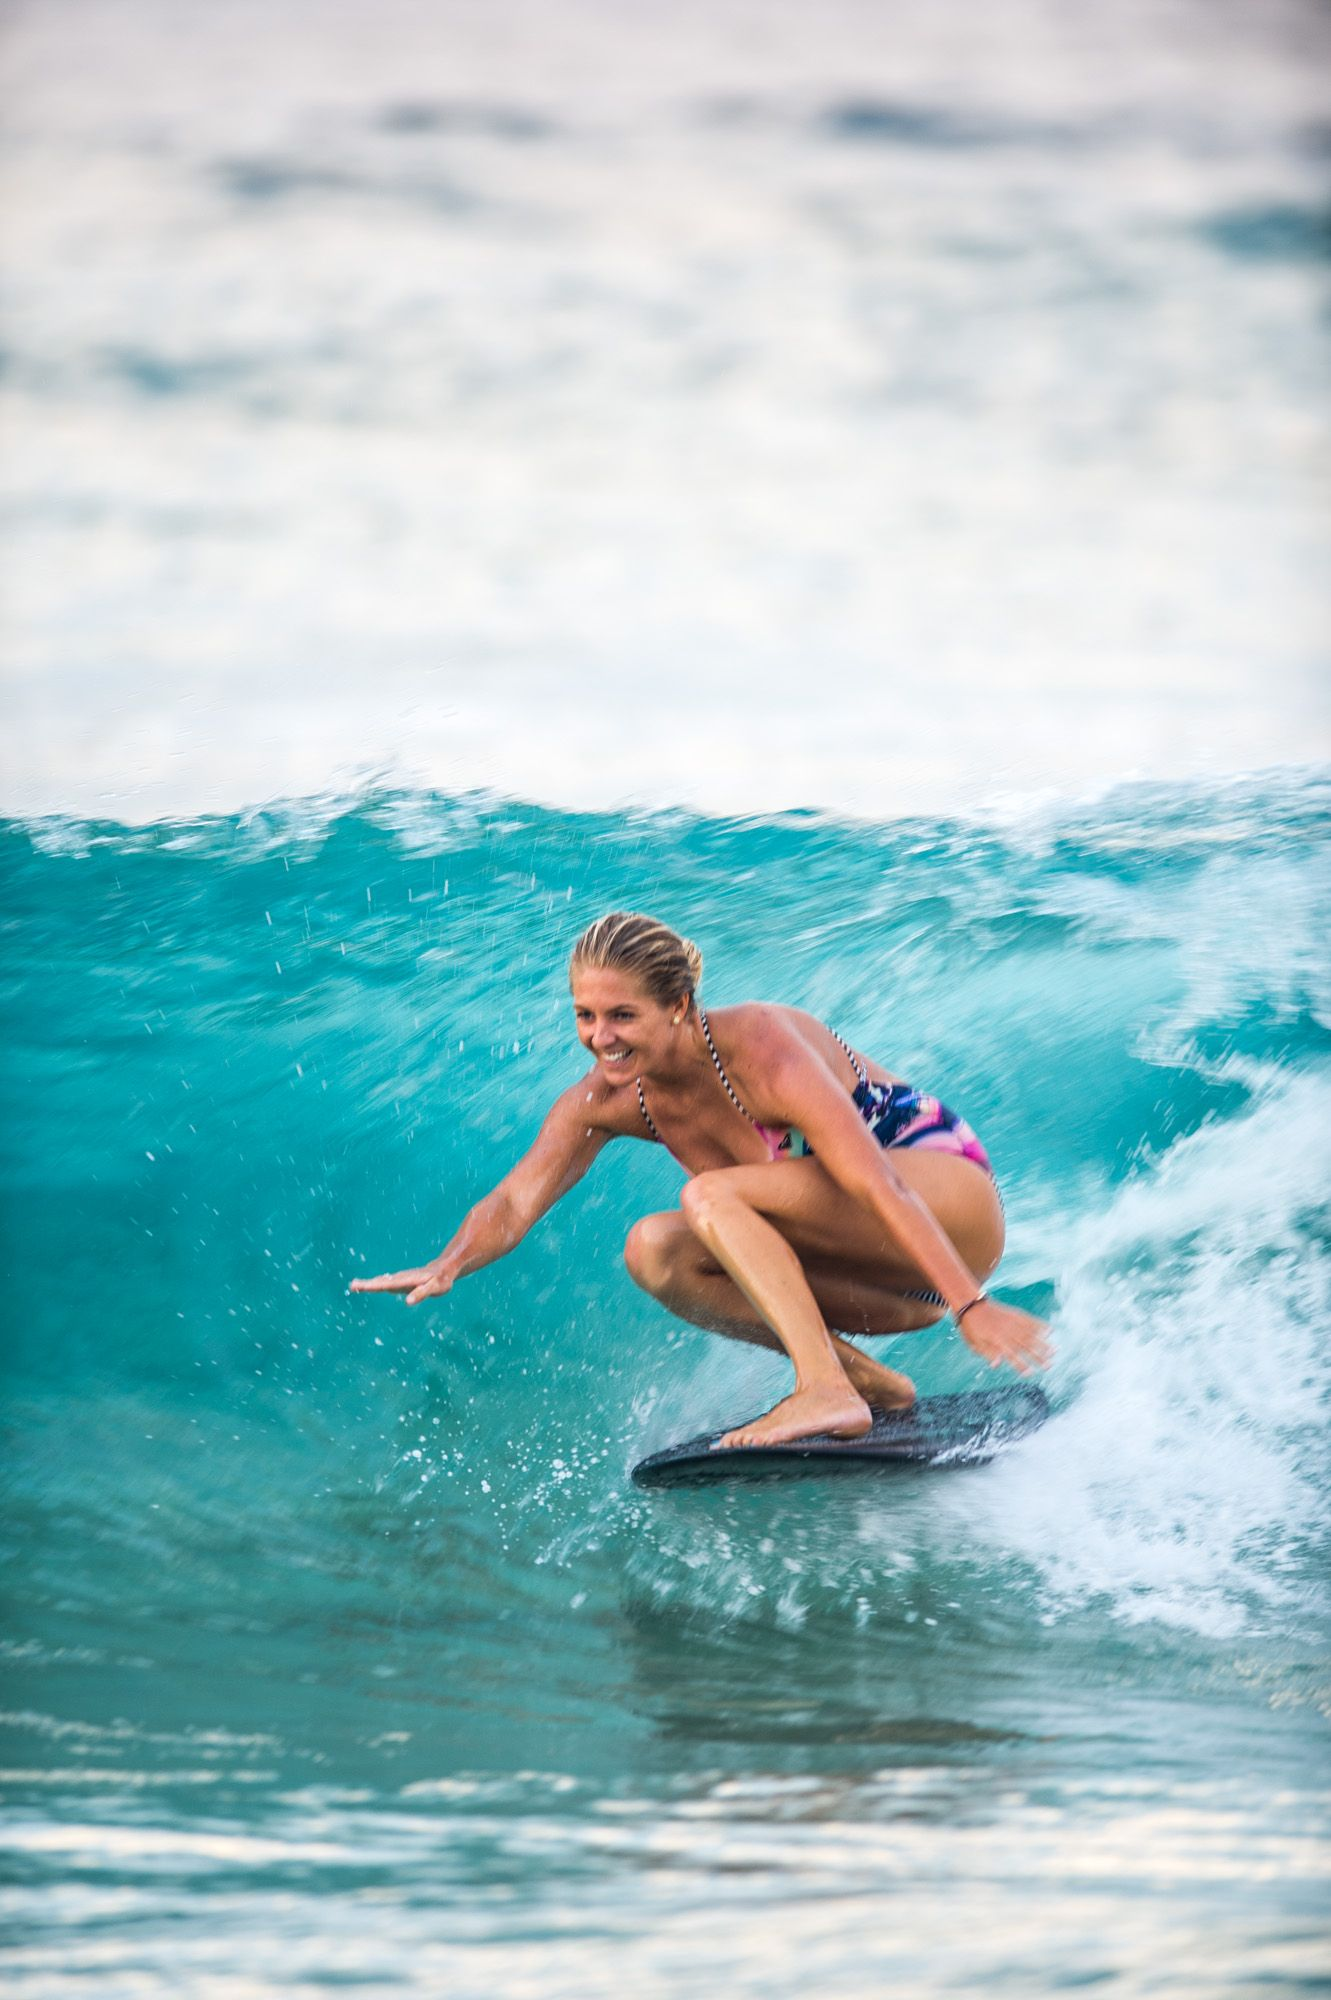 The Best Surfer Out There Is The One Having The Most Fun Popsurf Stephanie Gilmore Surfeuses Surfeur Paysage Plage